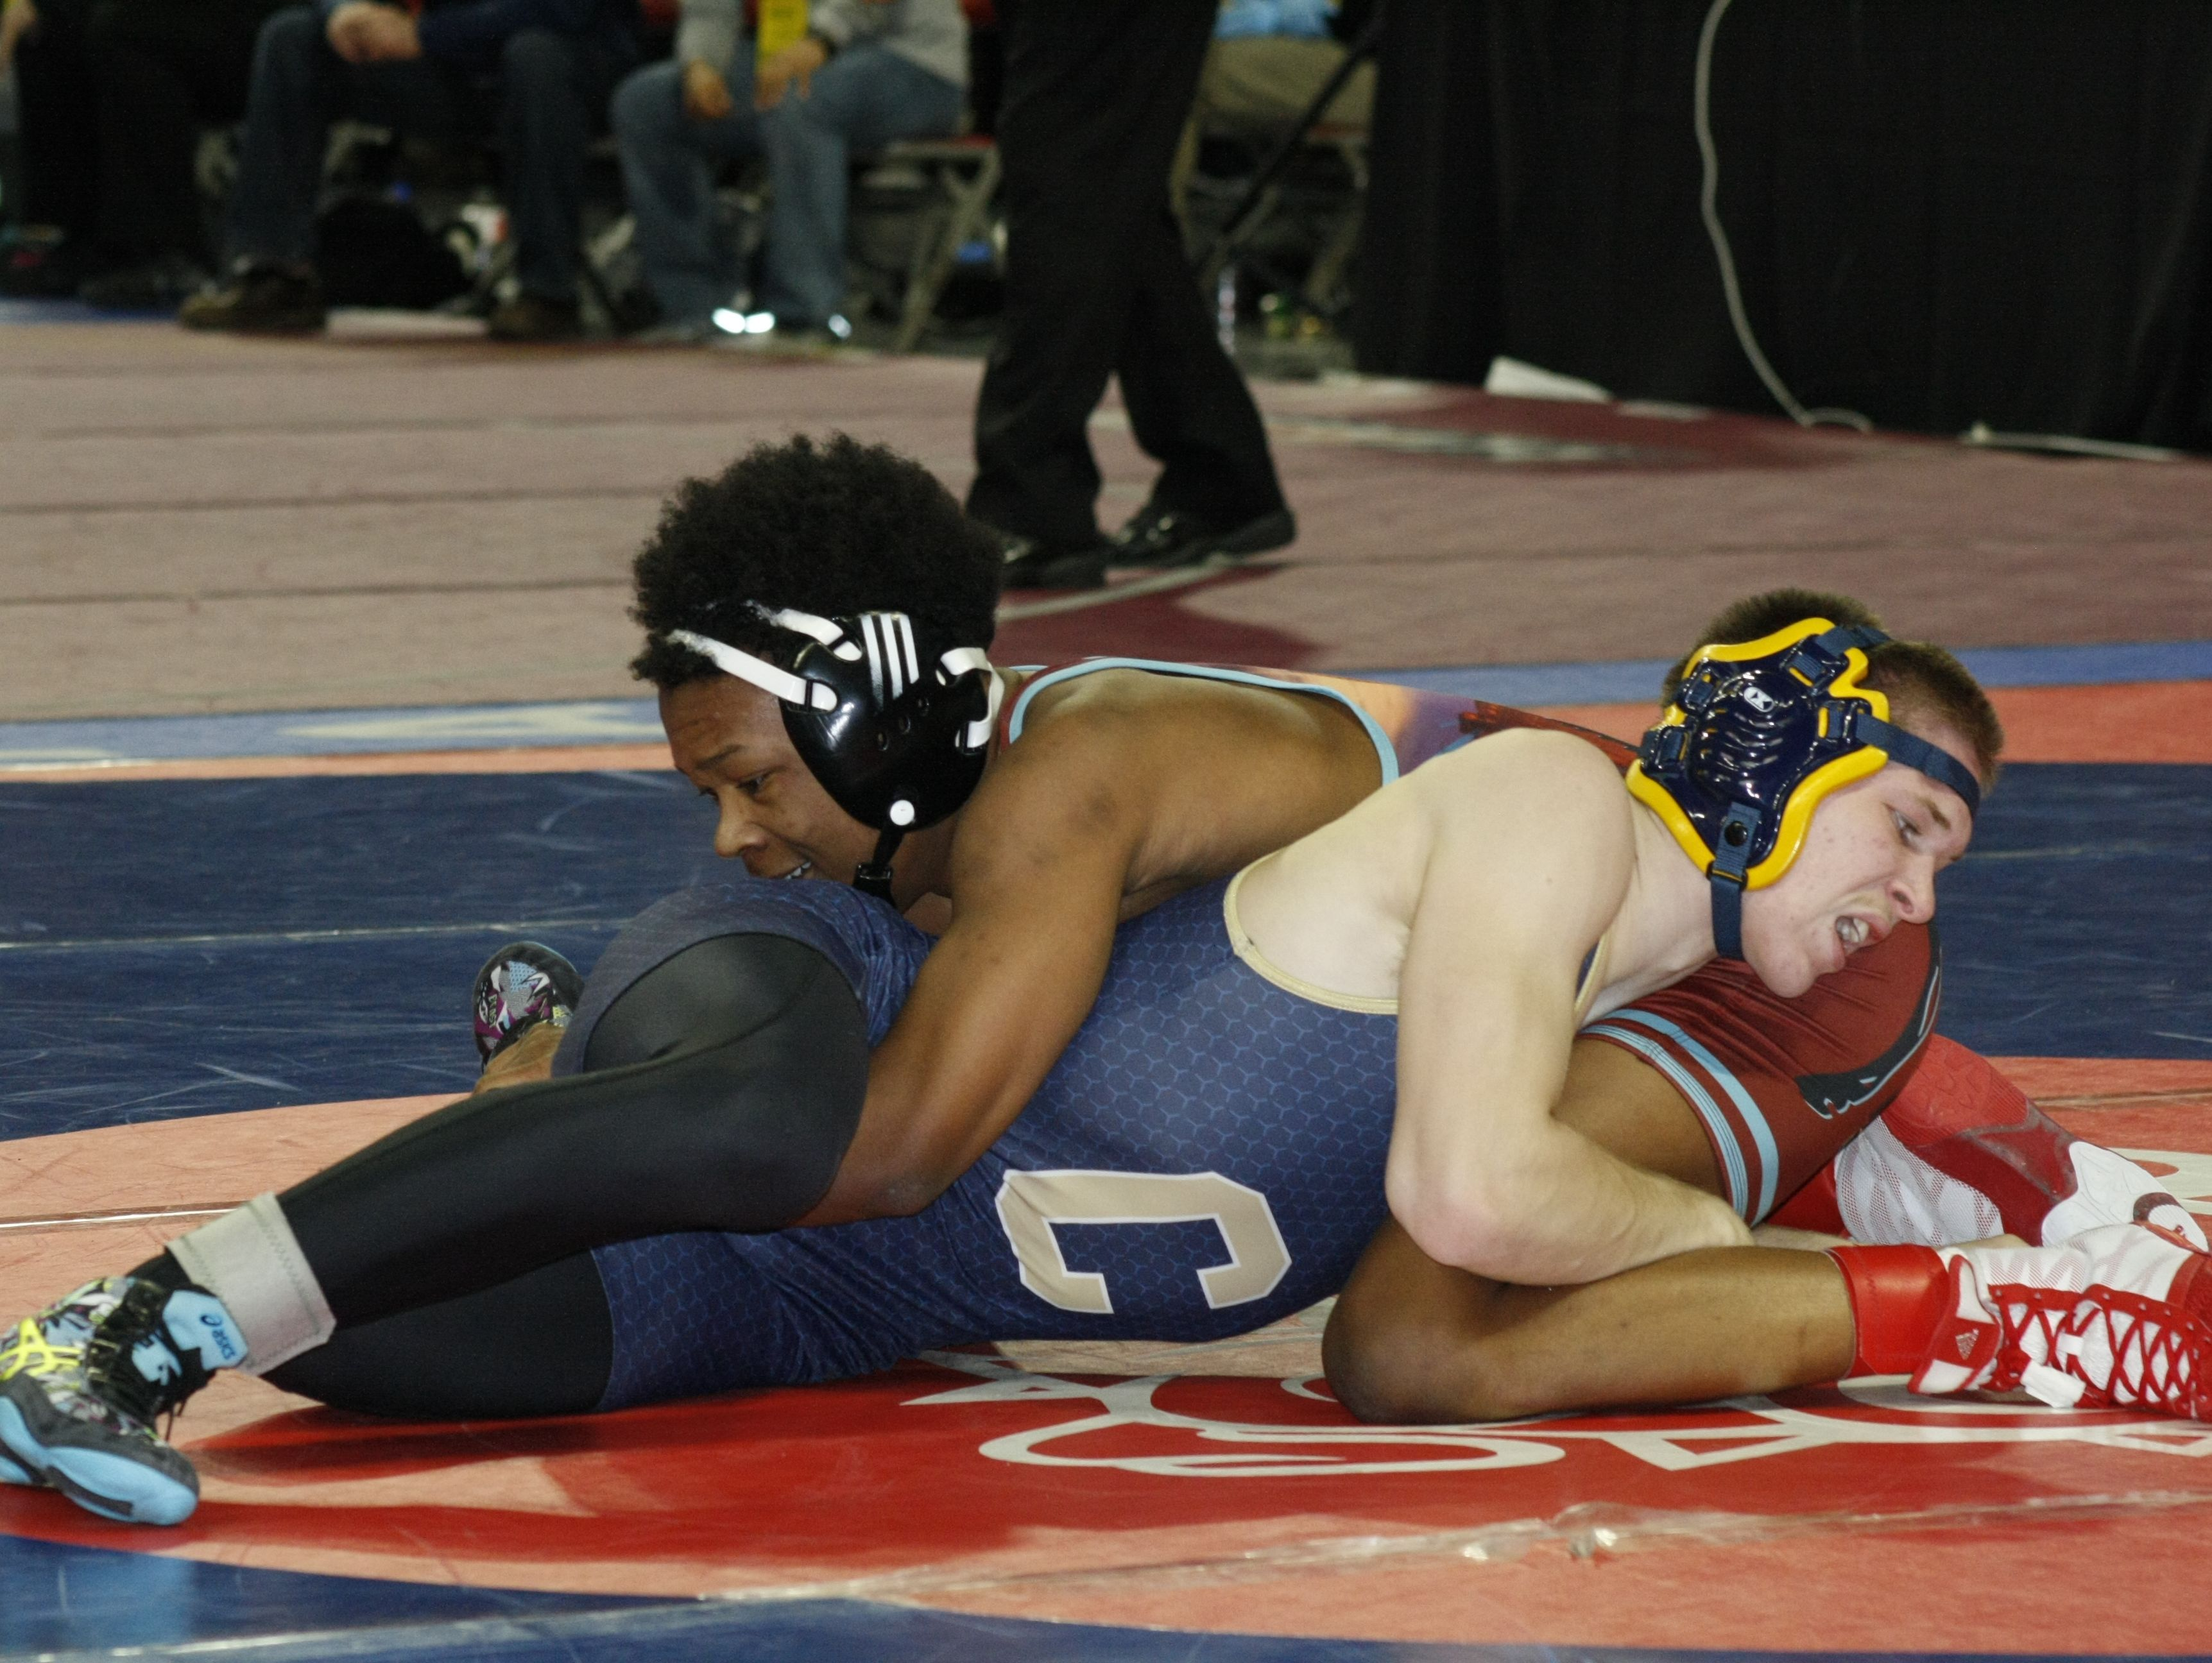 Kemonte Simons of Mumford, top, beat Chelsea's Nick Matusko, 14-8, in Division 2 quarterfinals at 125 pounds Friday.